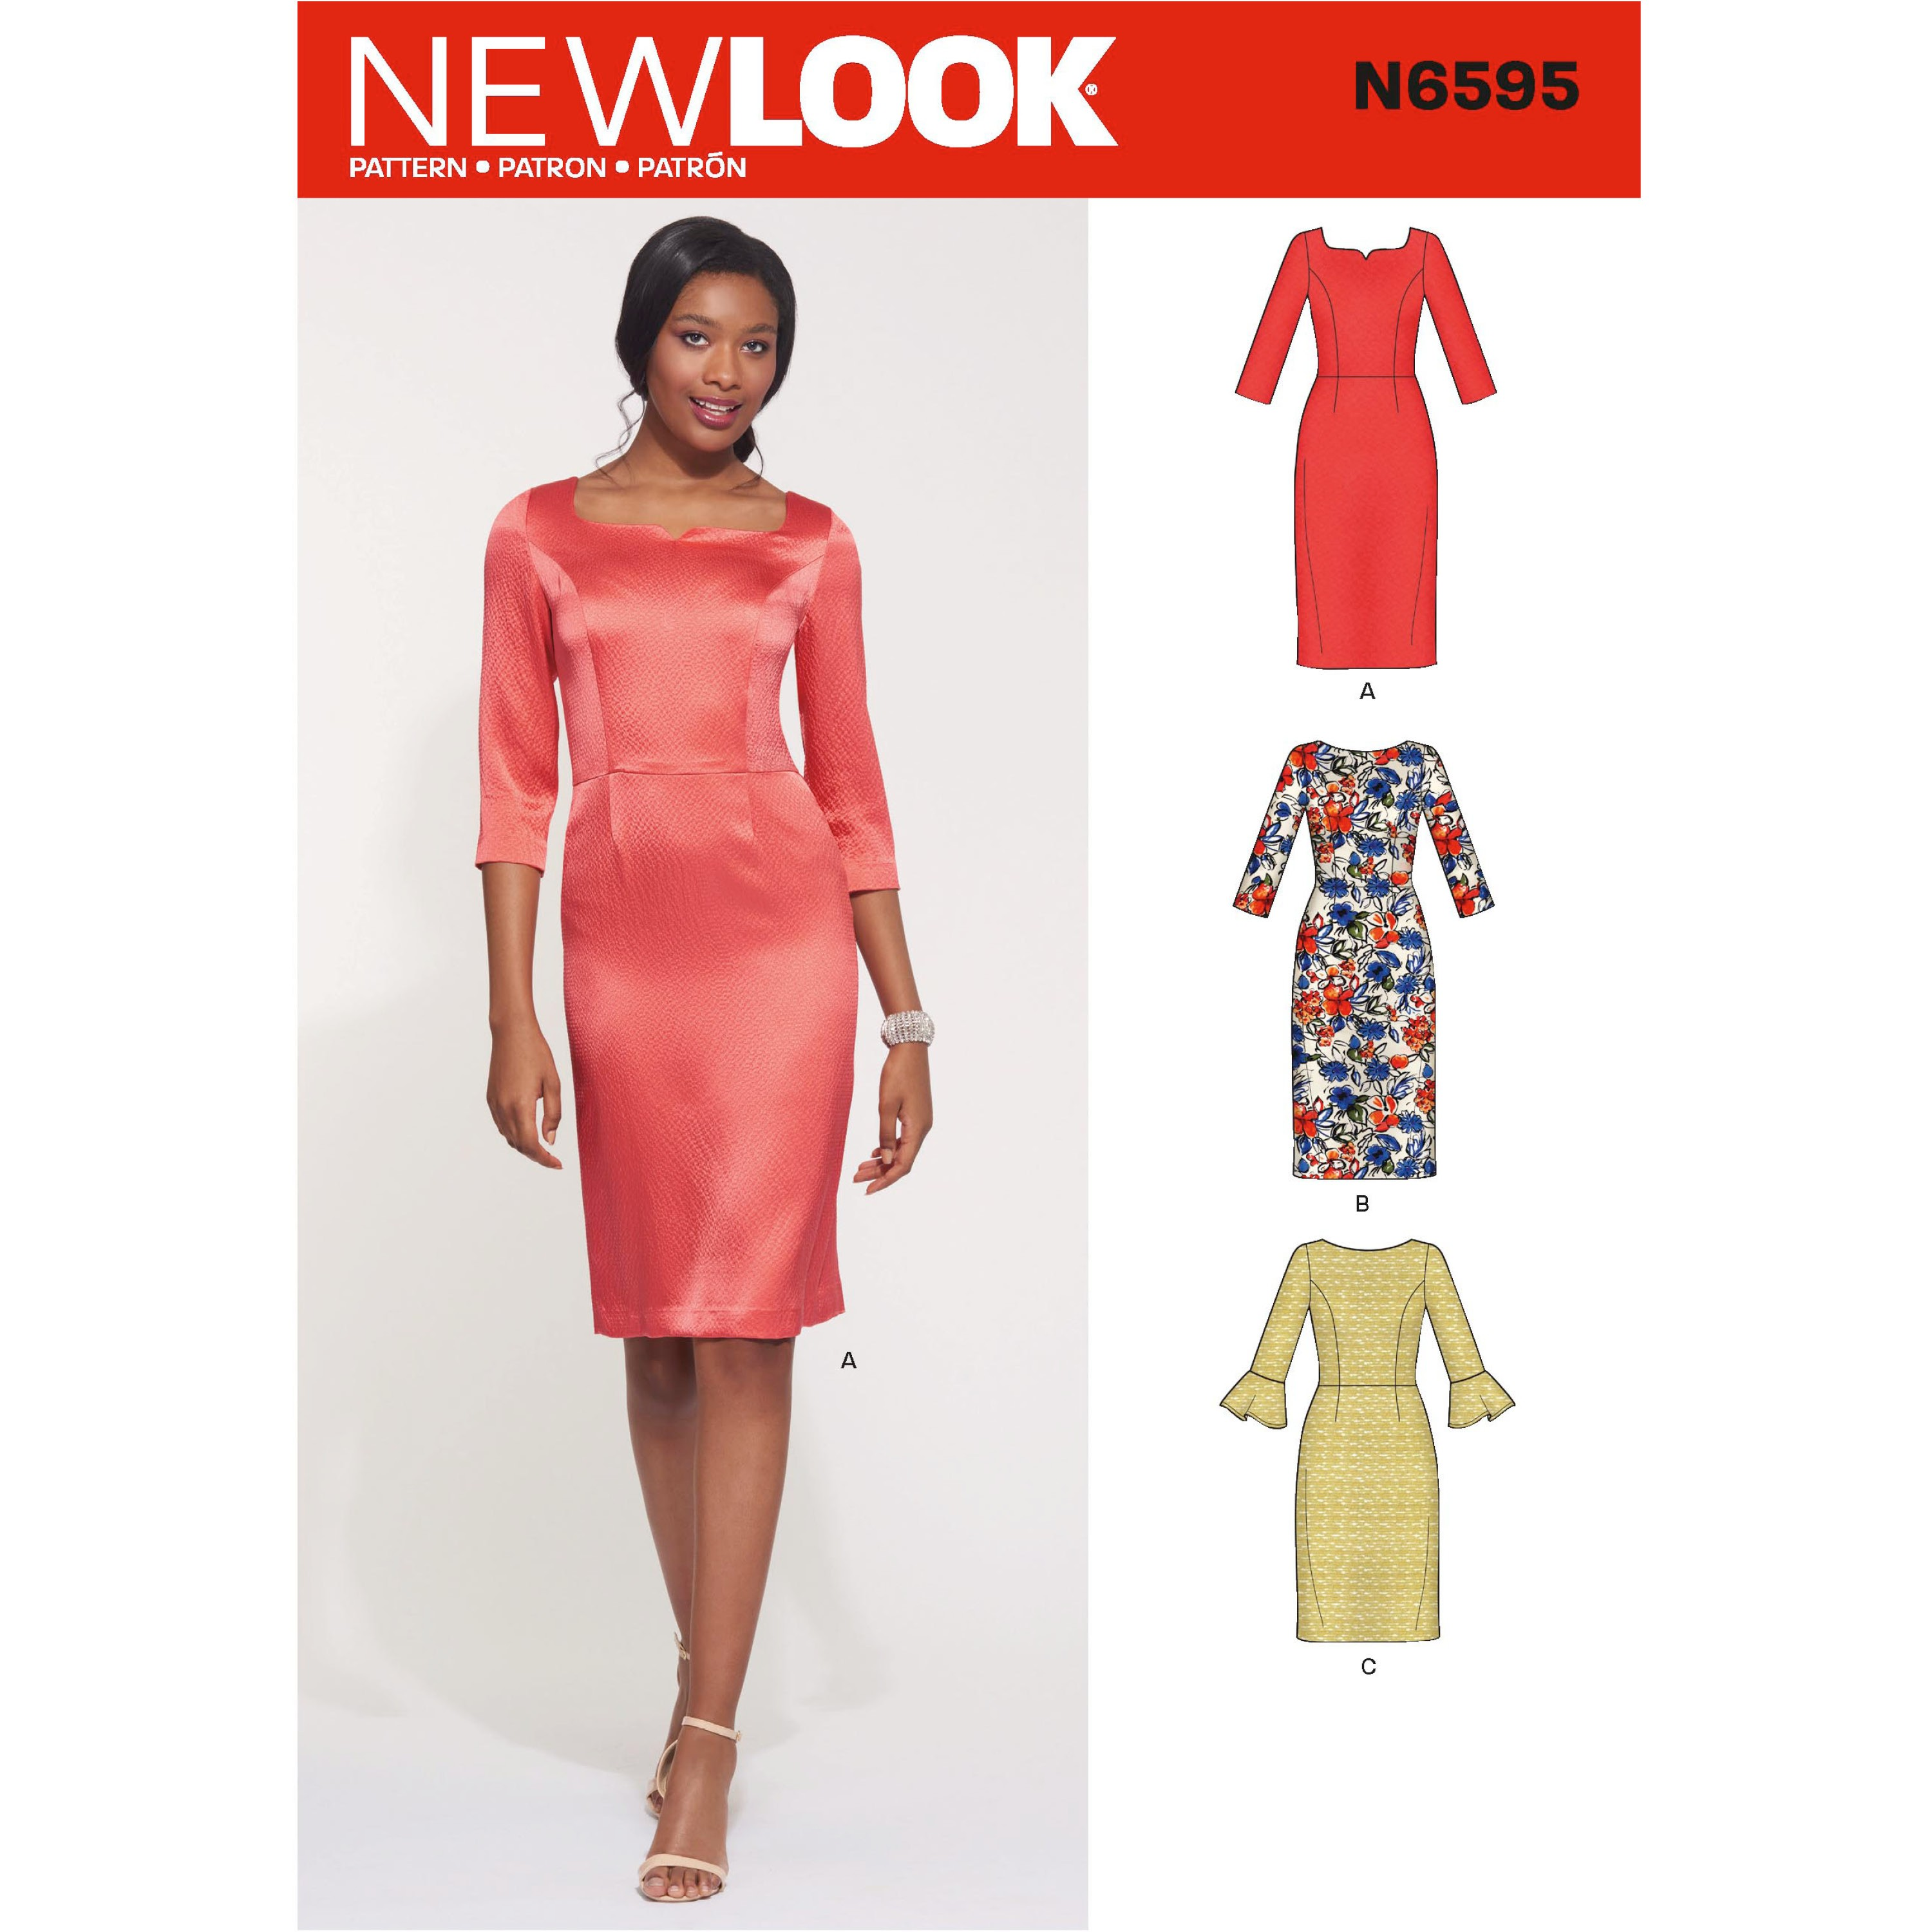 New Look Women's Form Fitting Dress with Neckline and Sleeve Variations 6595